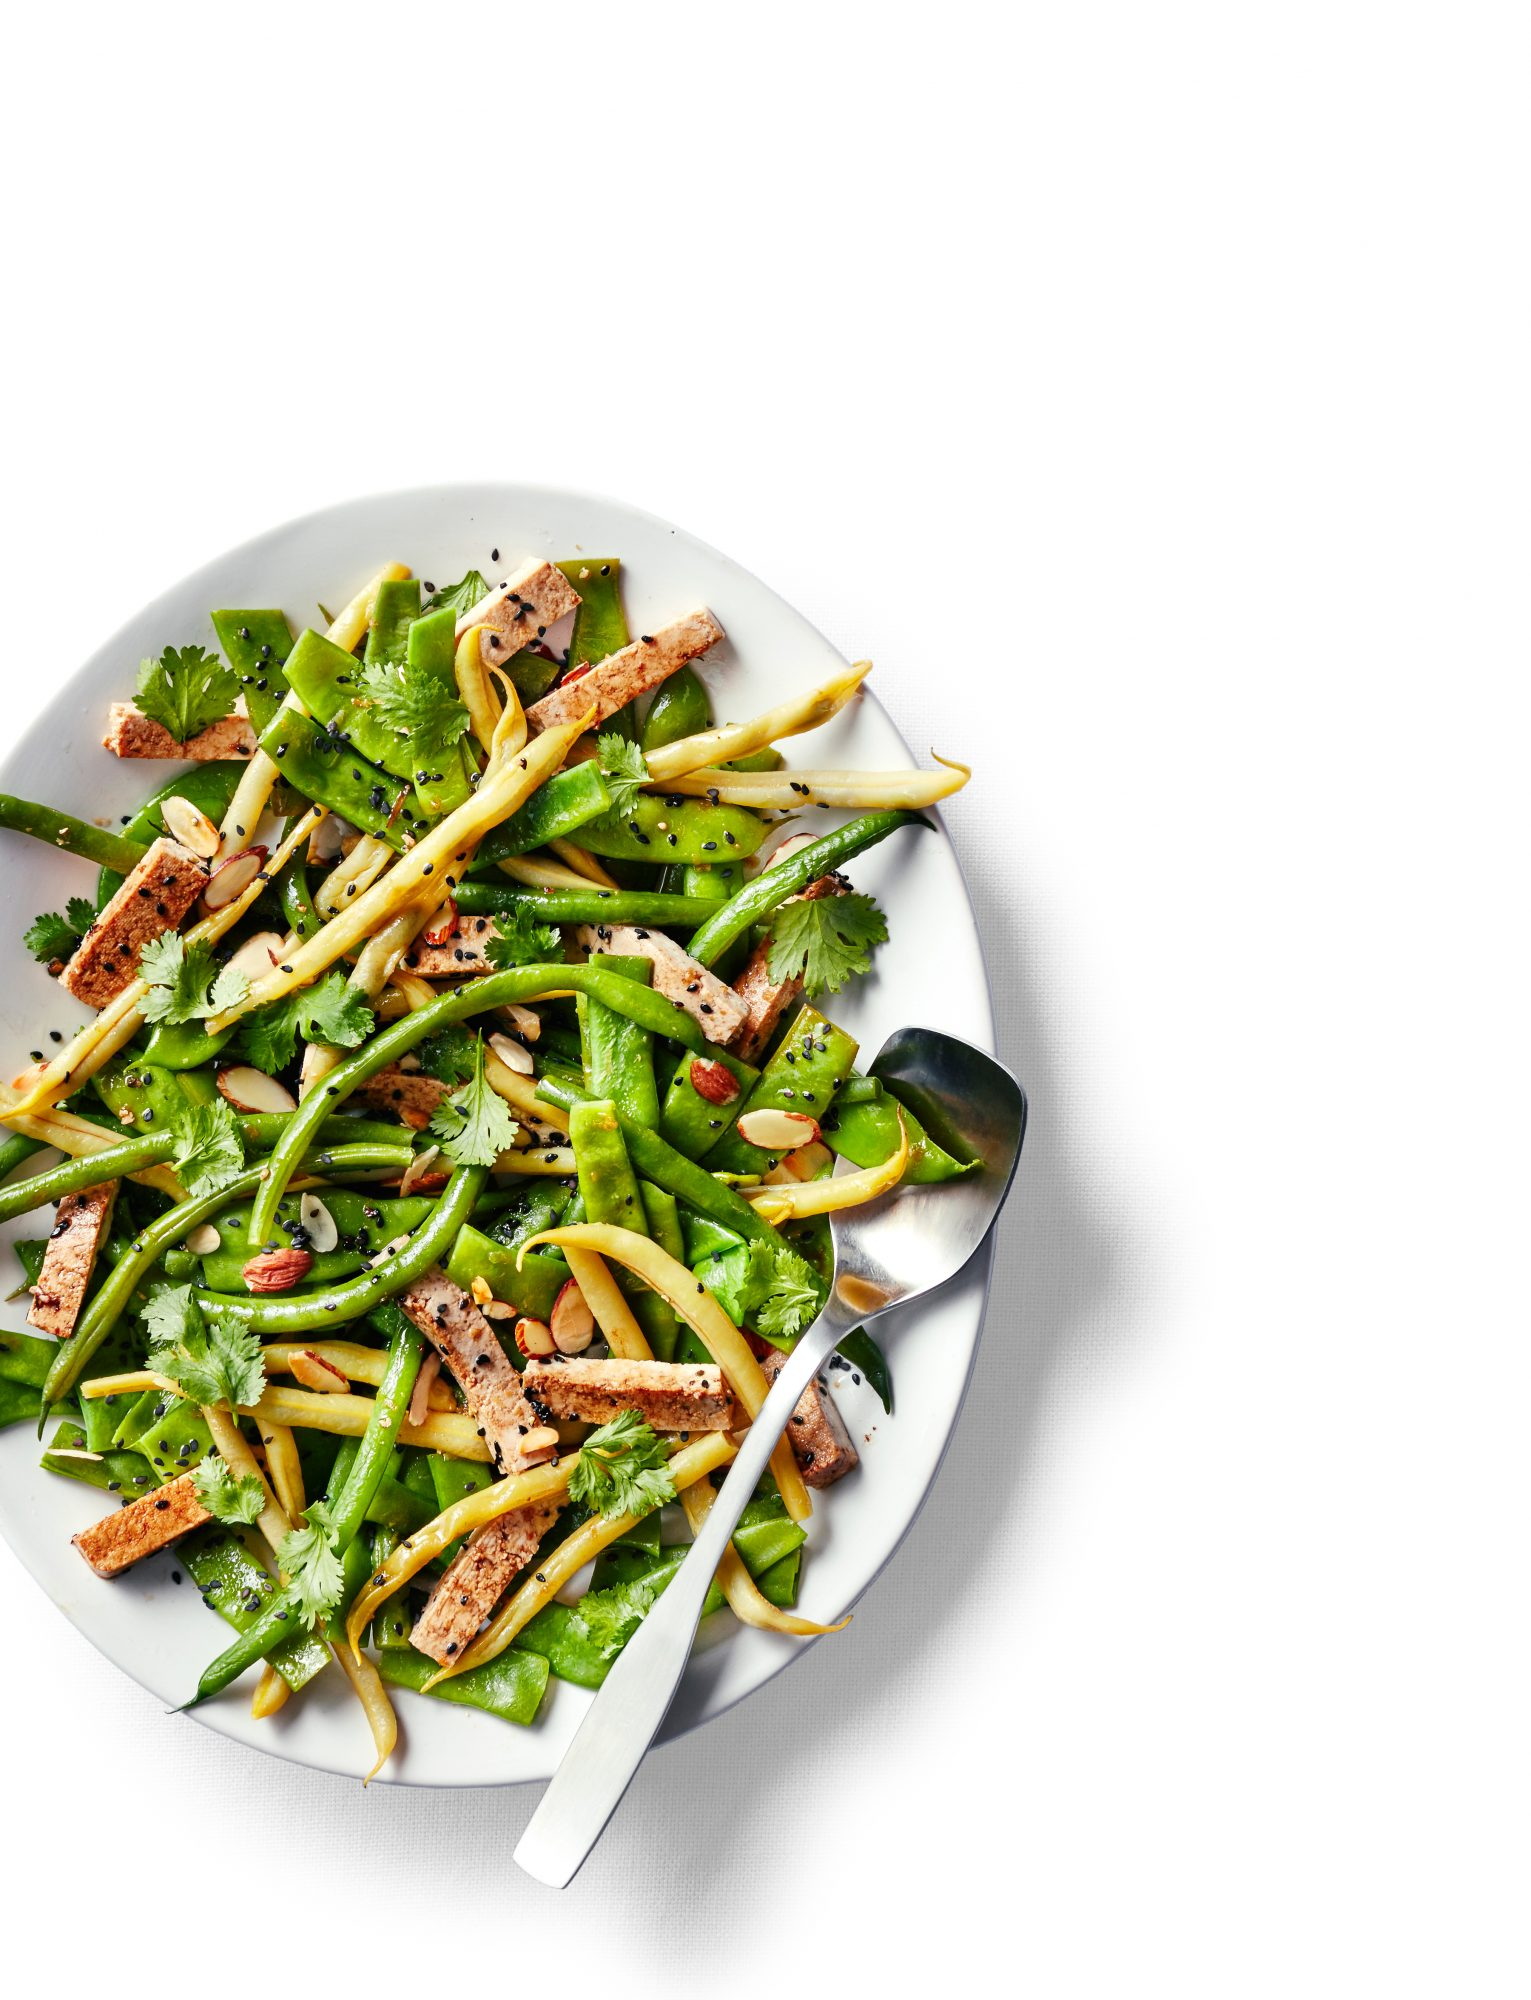 su-Pole Bean Salad with Ginger-Soy Tofu